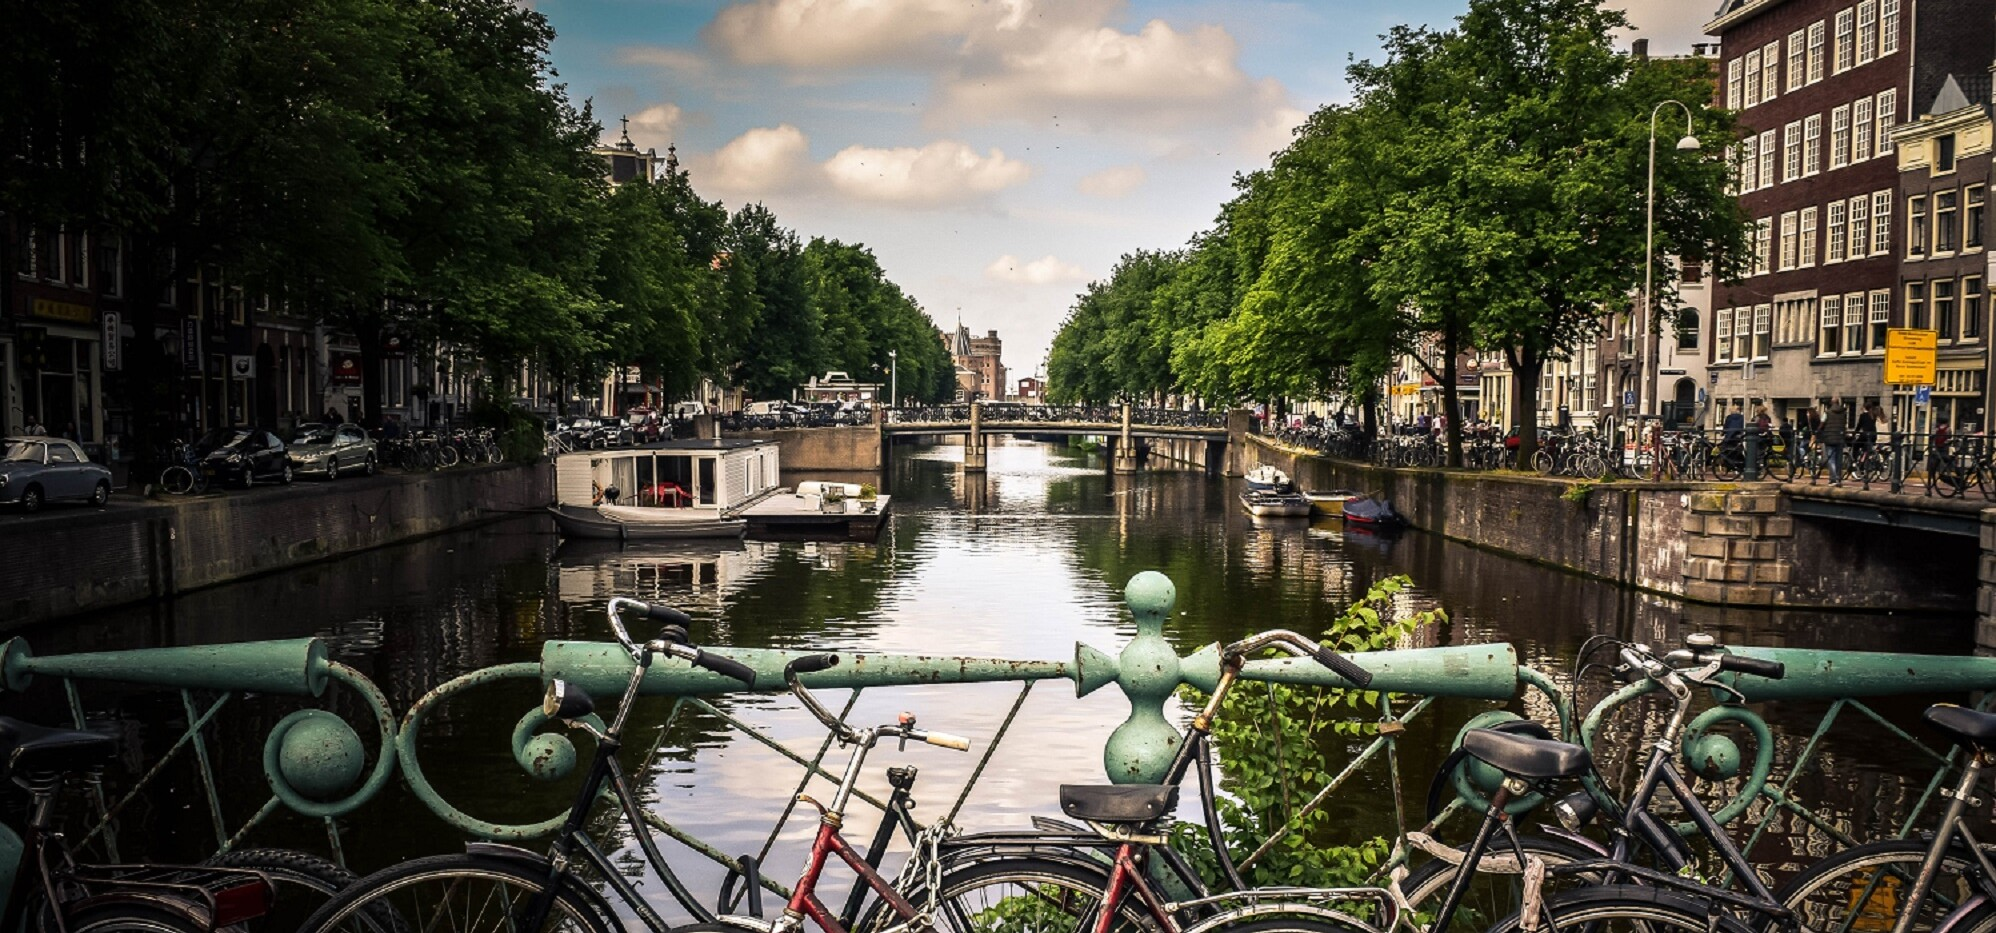 Amsterdam city photo